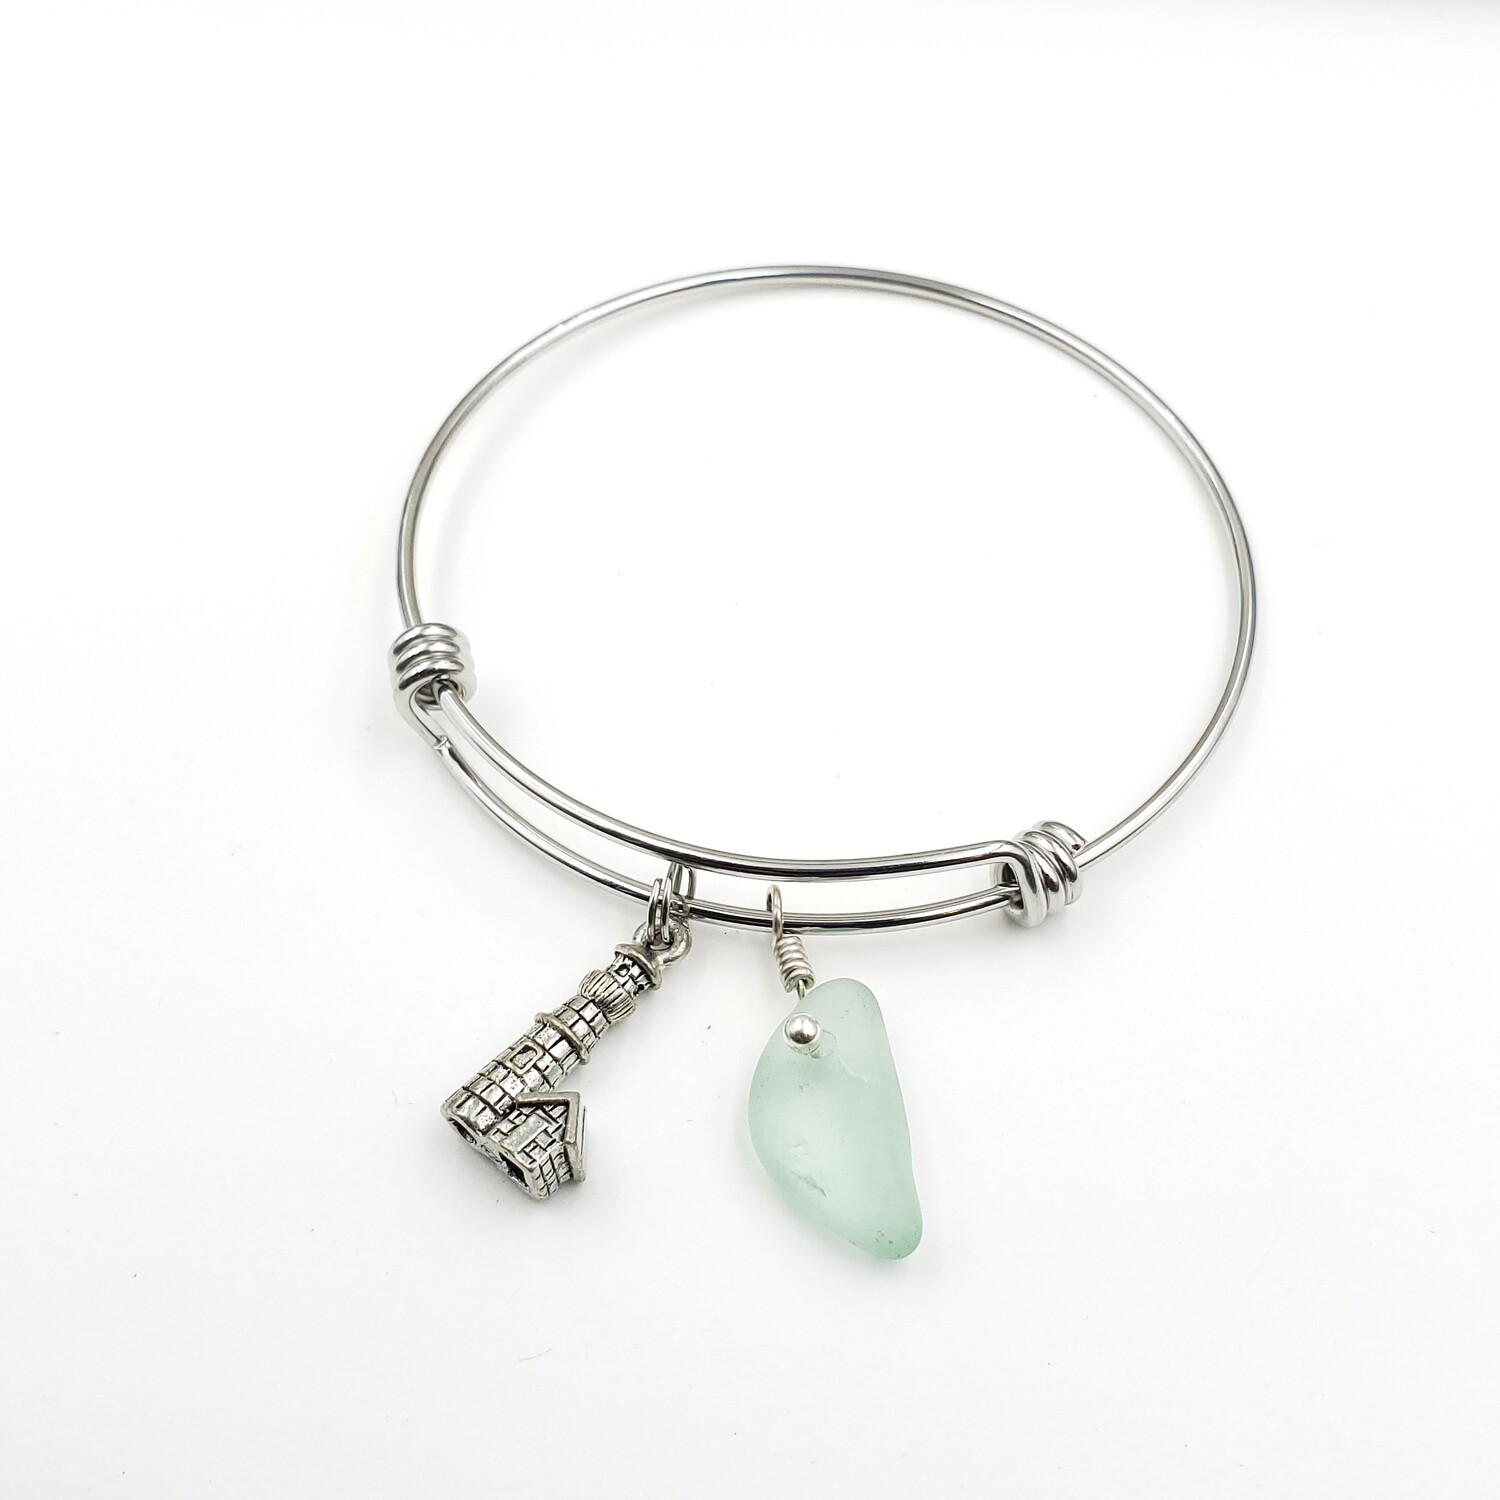 Bangle Bracelet with Lighthouse Charm and Seafoam Green Lake Erie Beach Glass